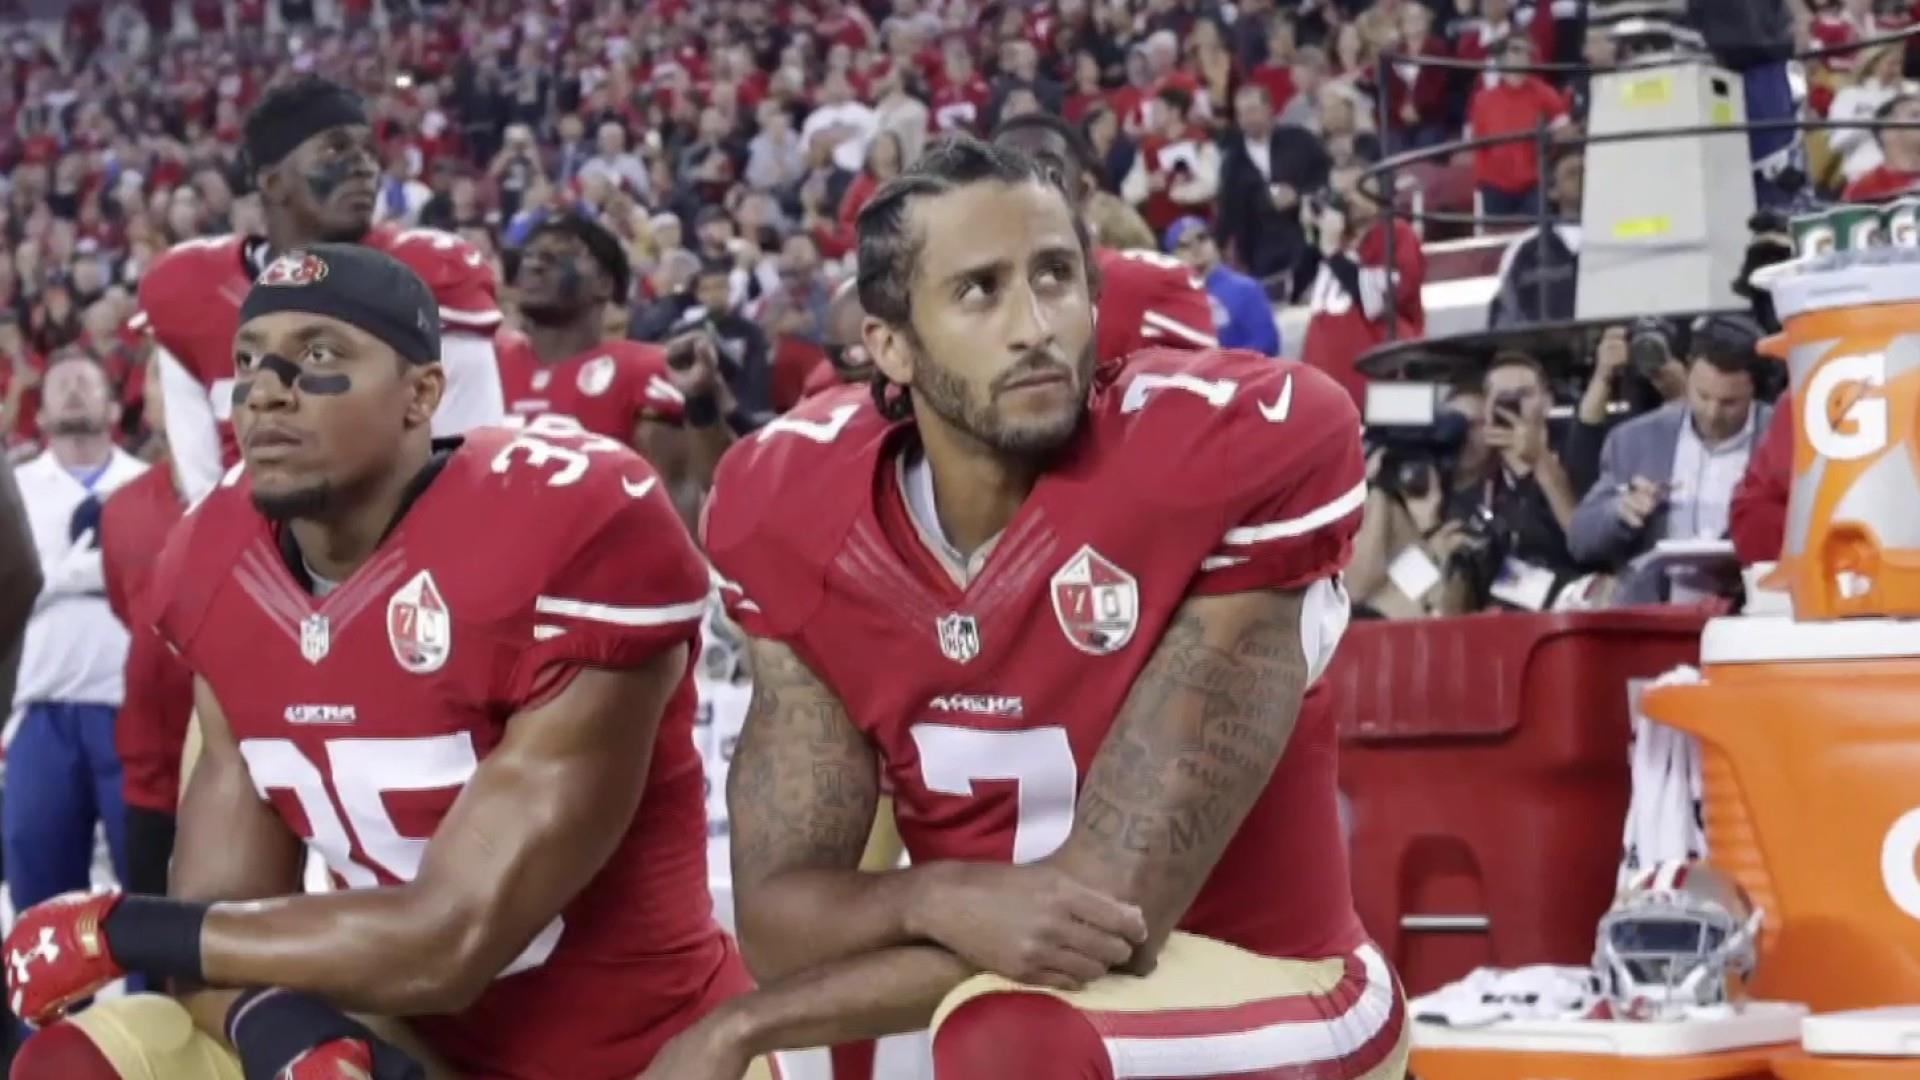 Touré and Kmele Foster debate: Was Kaepernick right to take a knee?